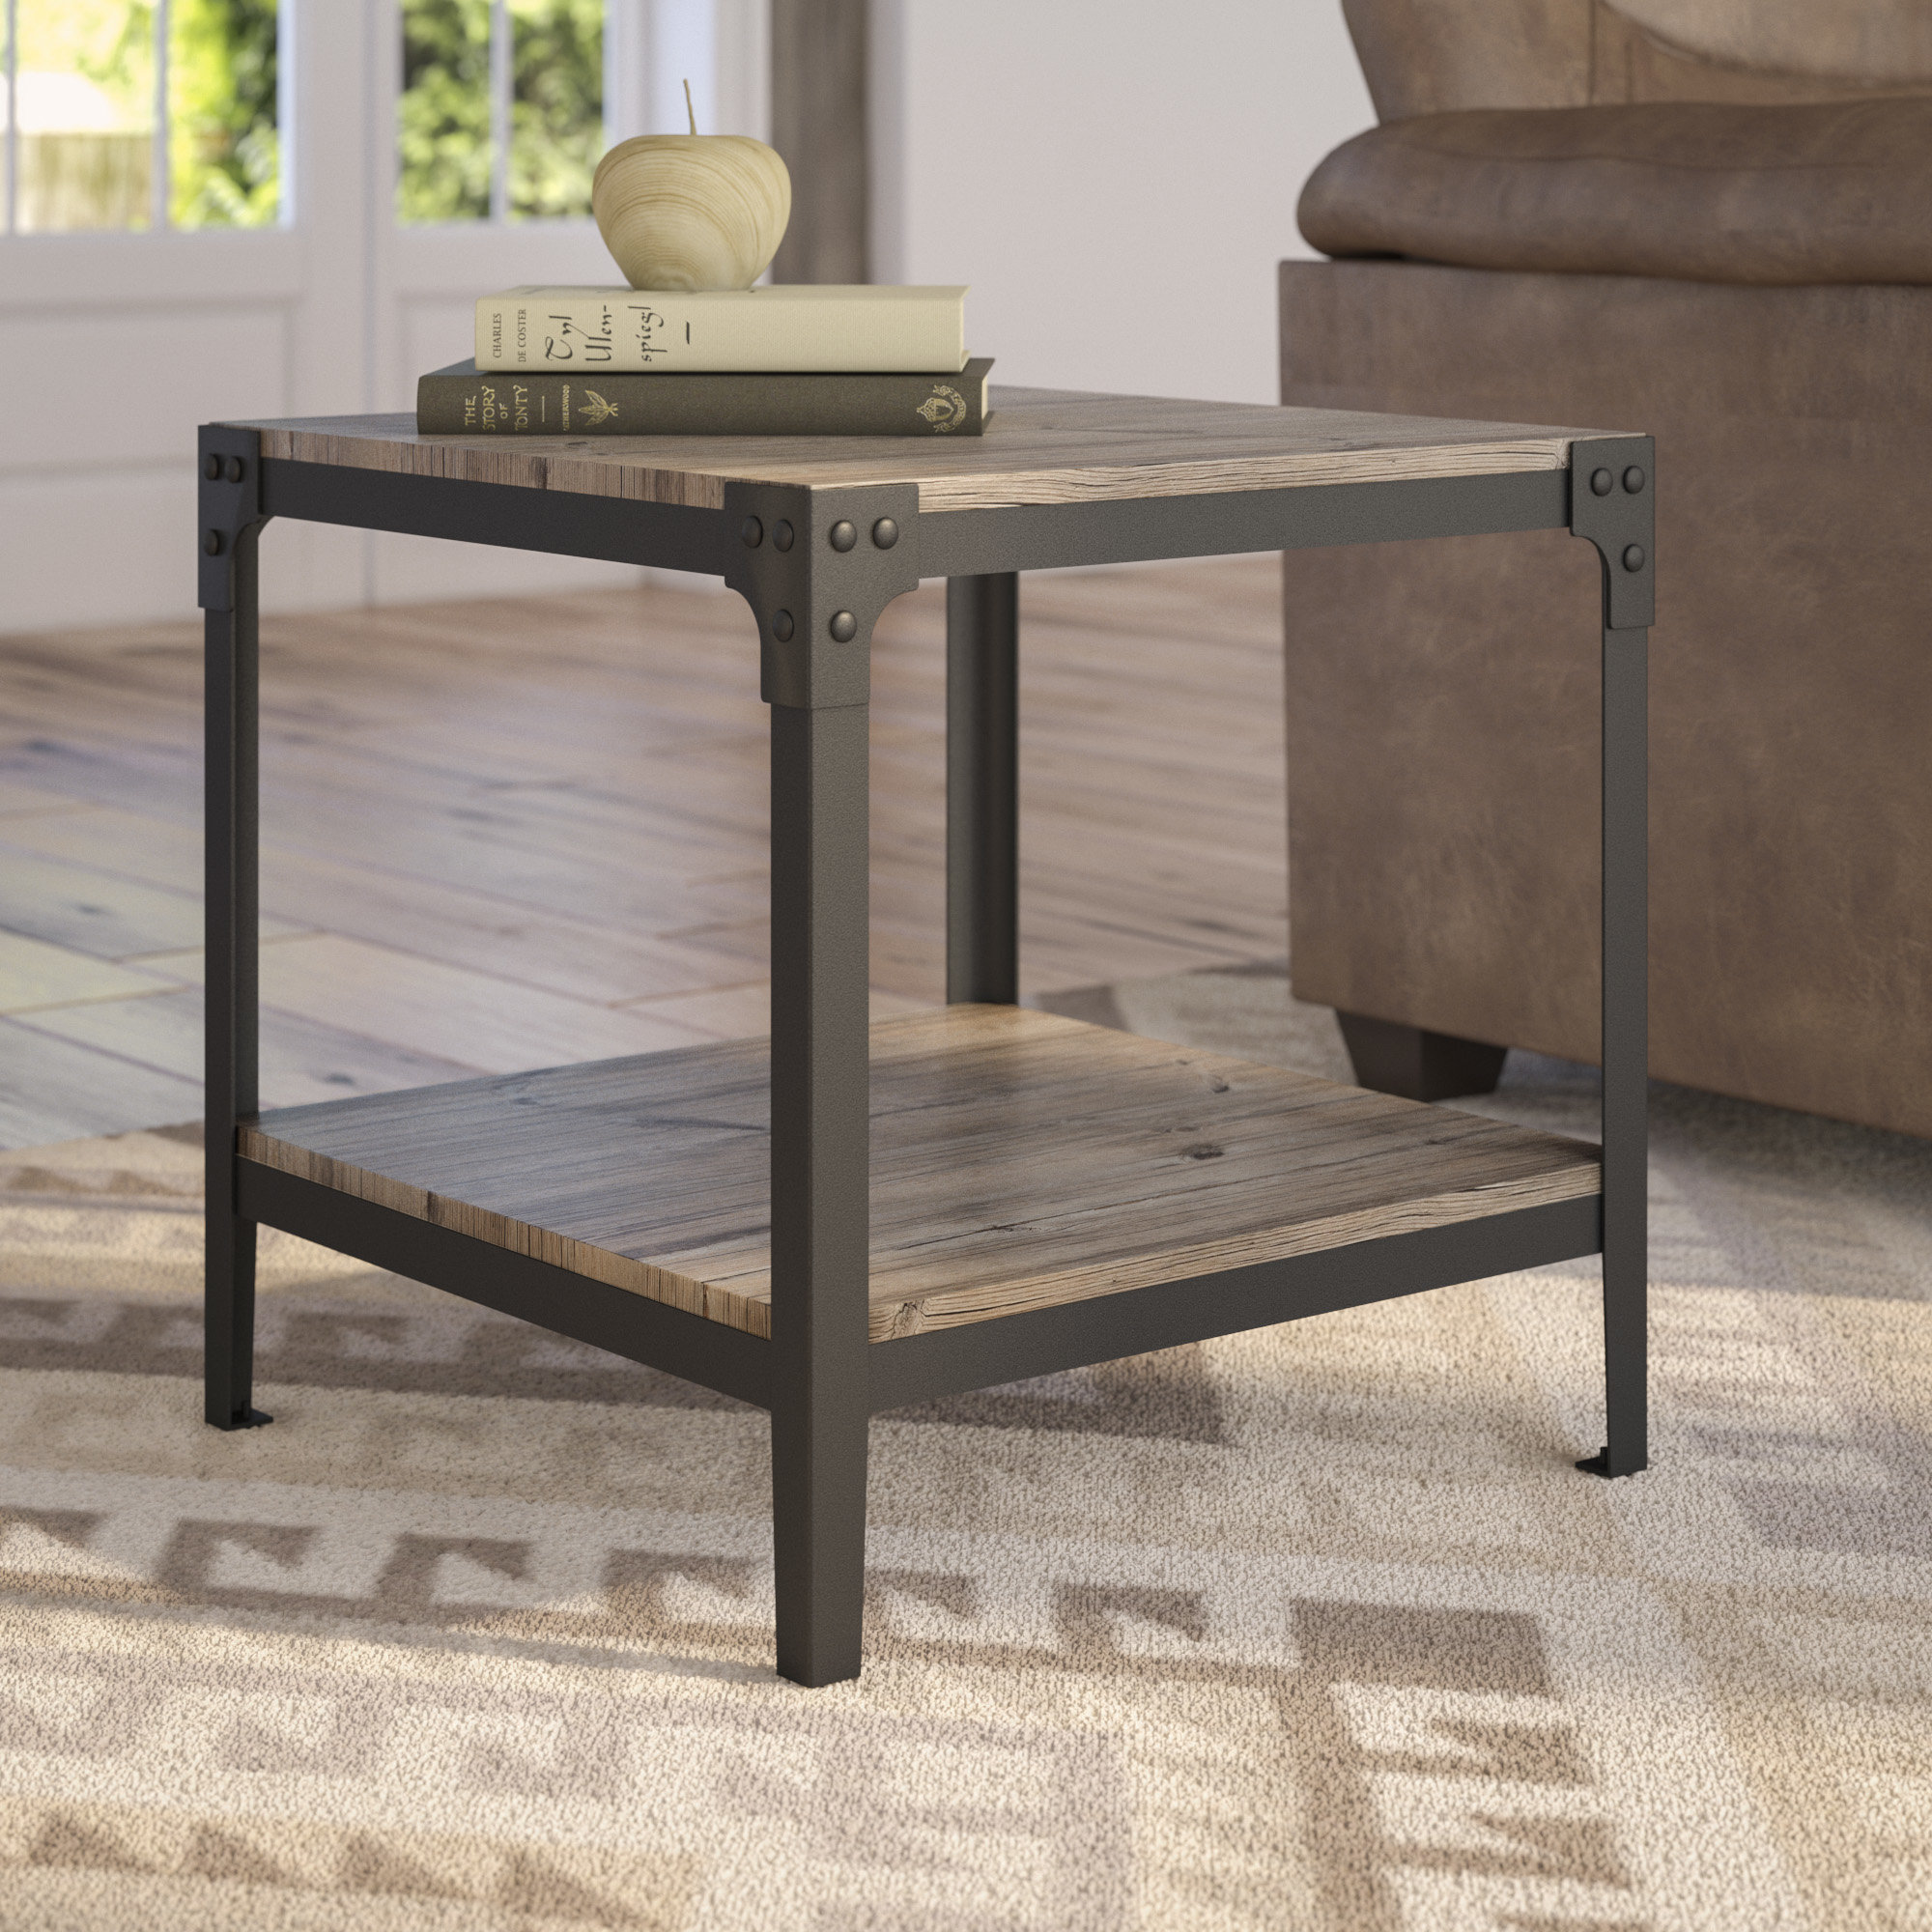 hairpin end table cainsville room essentials accent walnut quickview vanity west elm wall shelf outdoor bistro set metal kitchen usb port rustic nest tables dining pedestal base